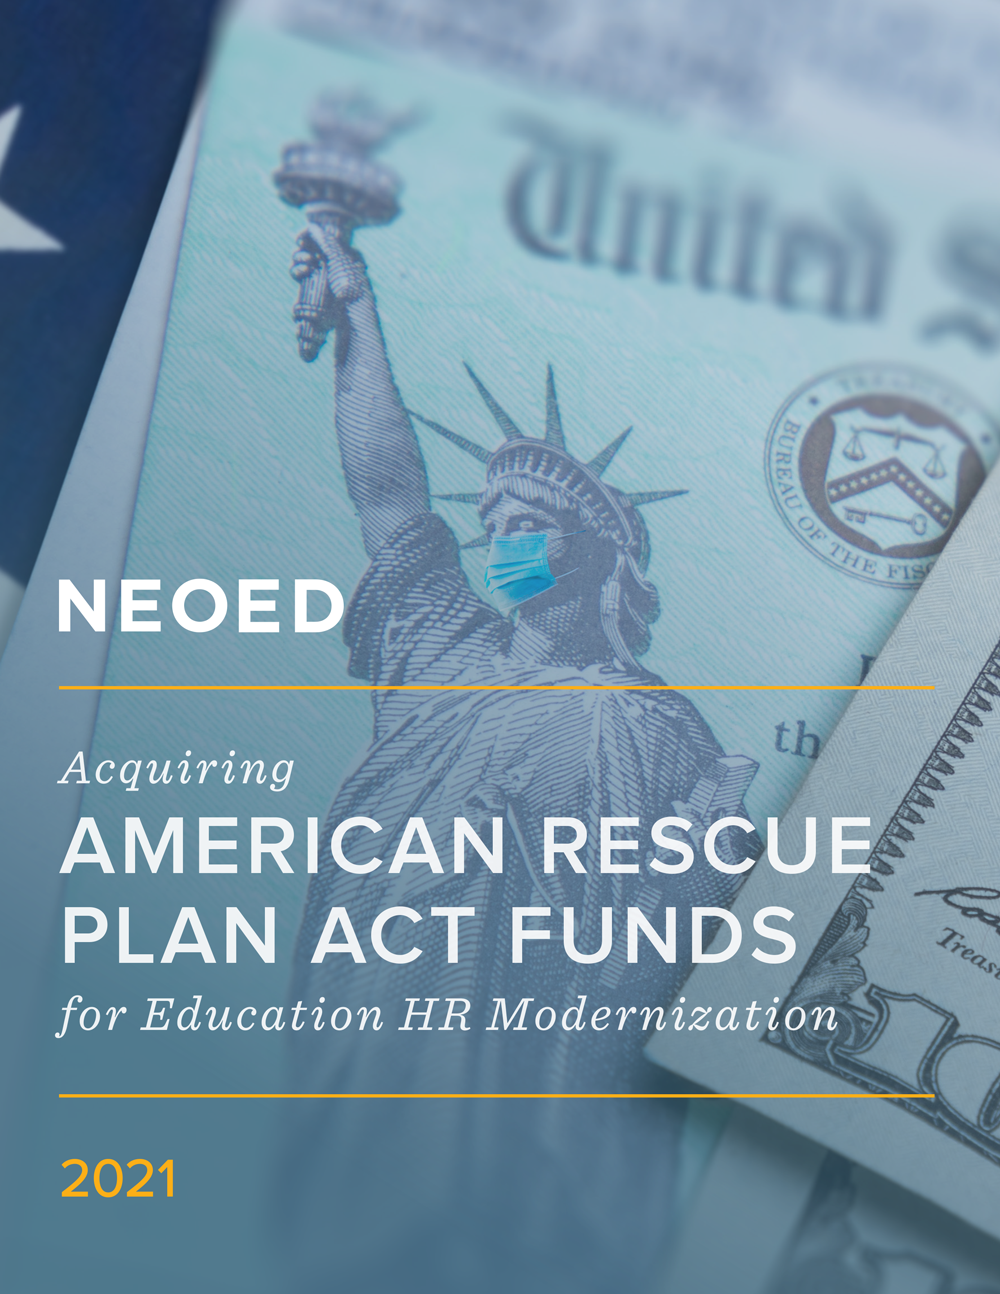 Acquiring American Rescue Plan Funds for Education HR Modernization